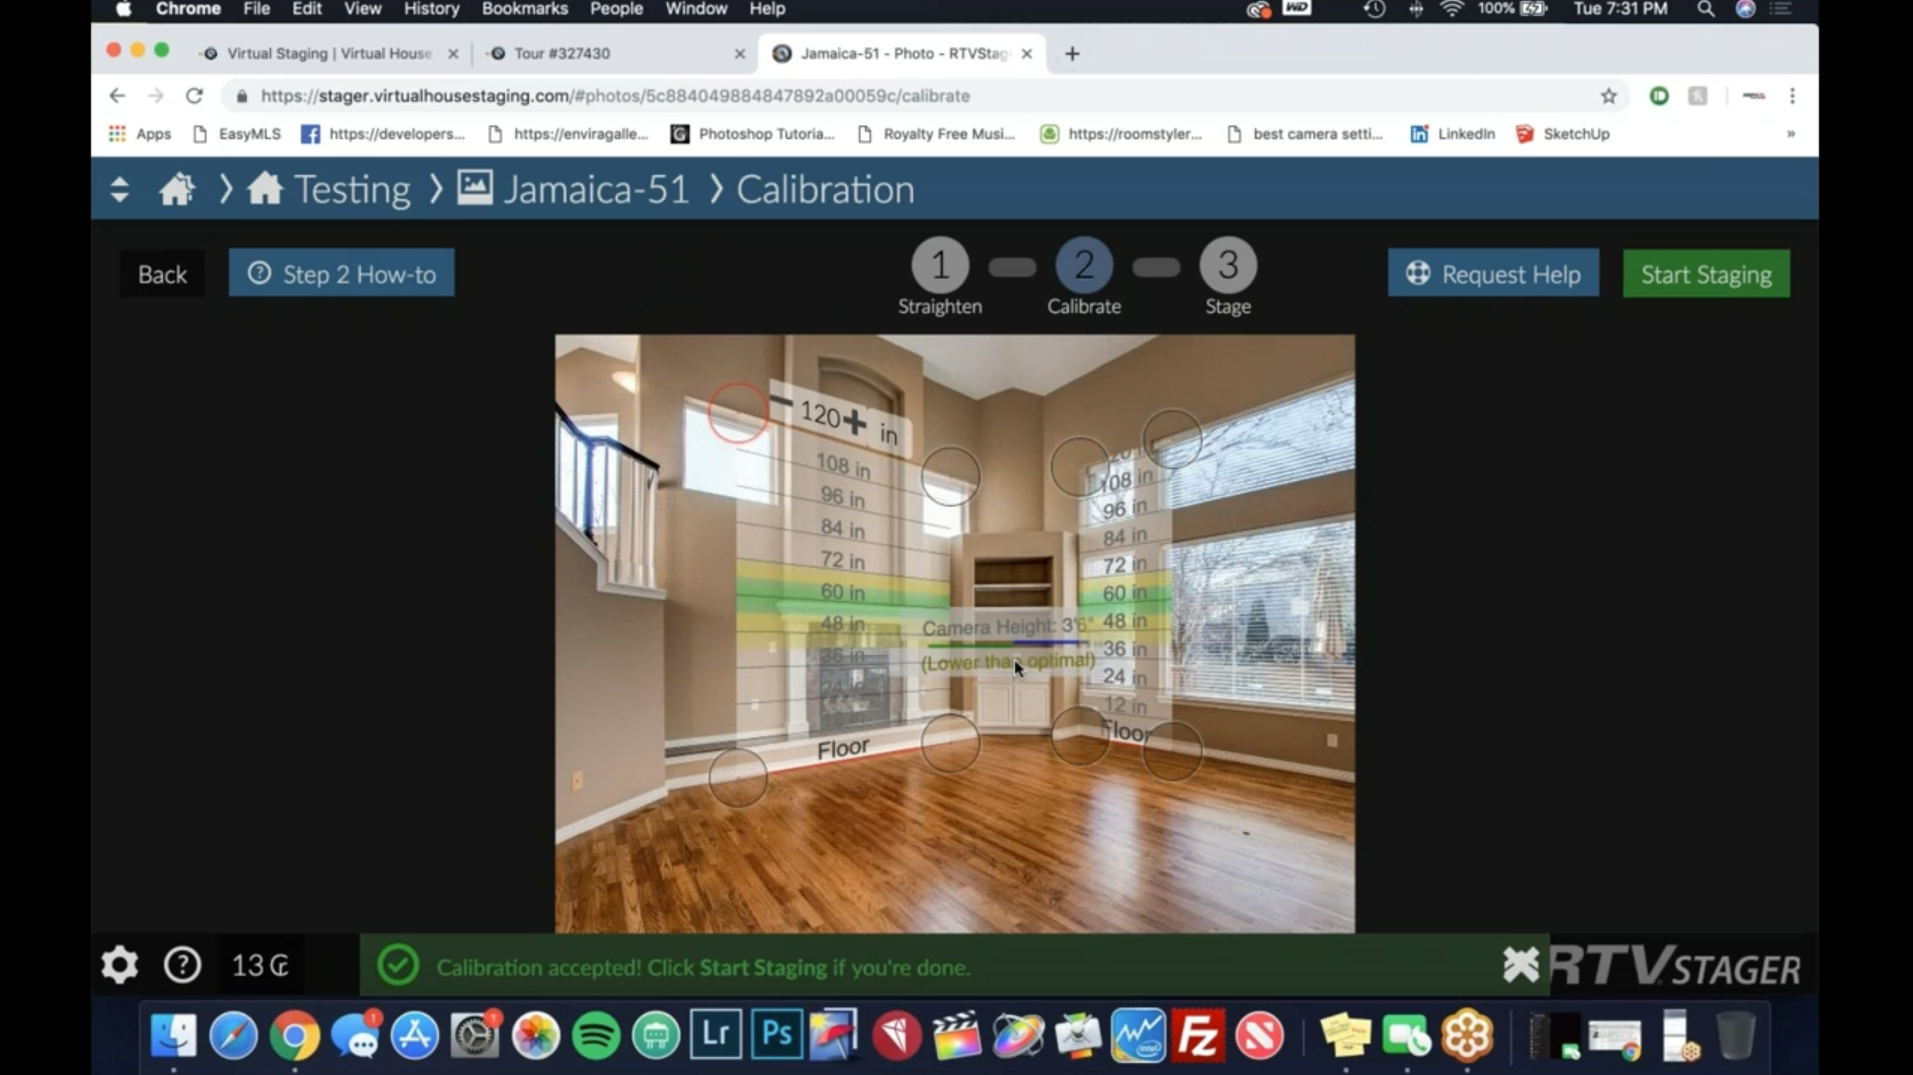 The FORMULA 84 – Virtual Staging with Tom